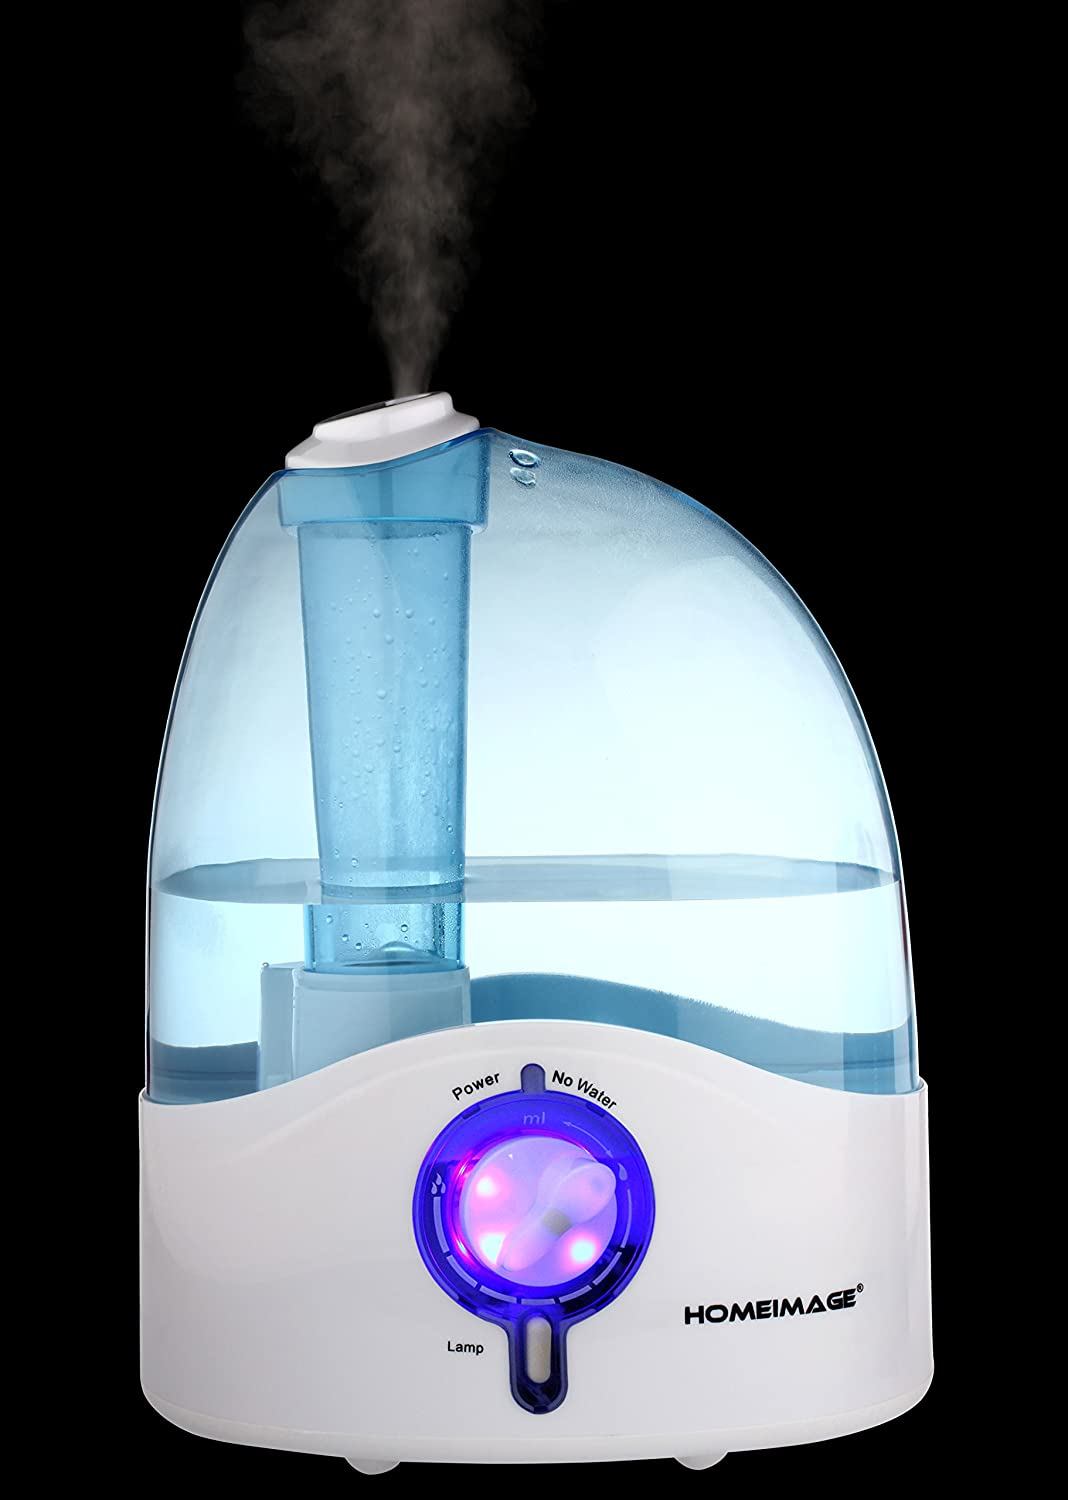 Blue 1.19 gallons or 4.5 liters Large Tank Capacity Cool Mist Humidifier HI-HYB12BLU HI-HYB12BLUM HOMEIMAGE 1.58 Gallons per day Output